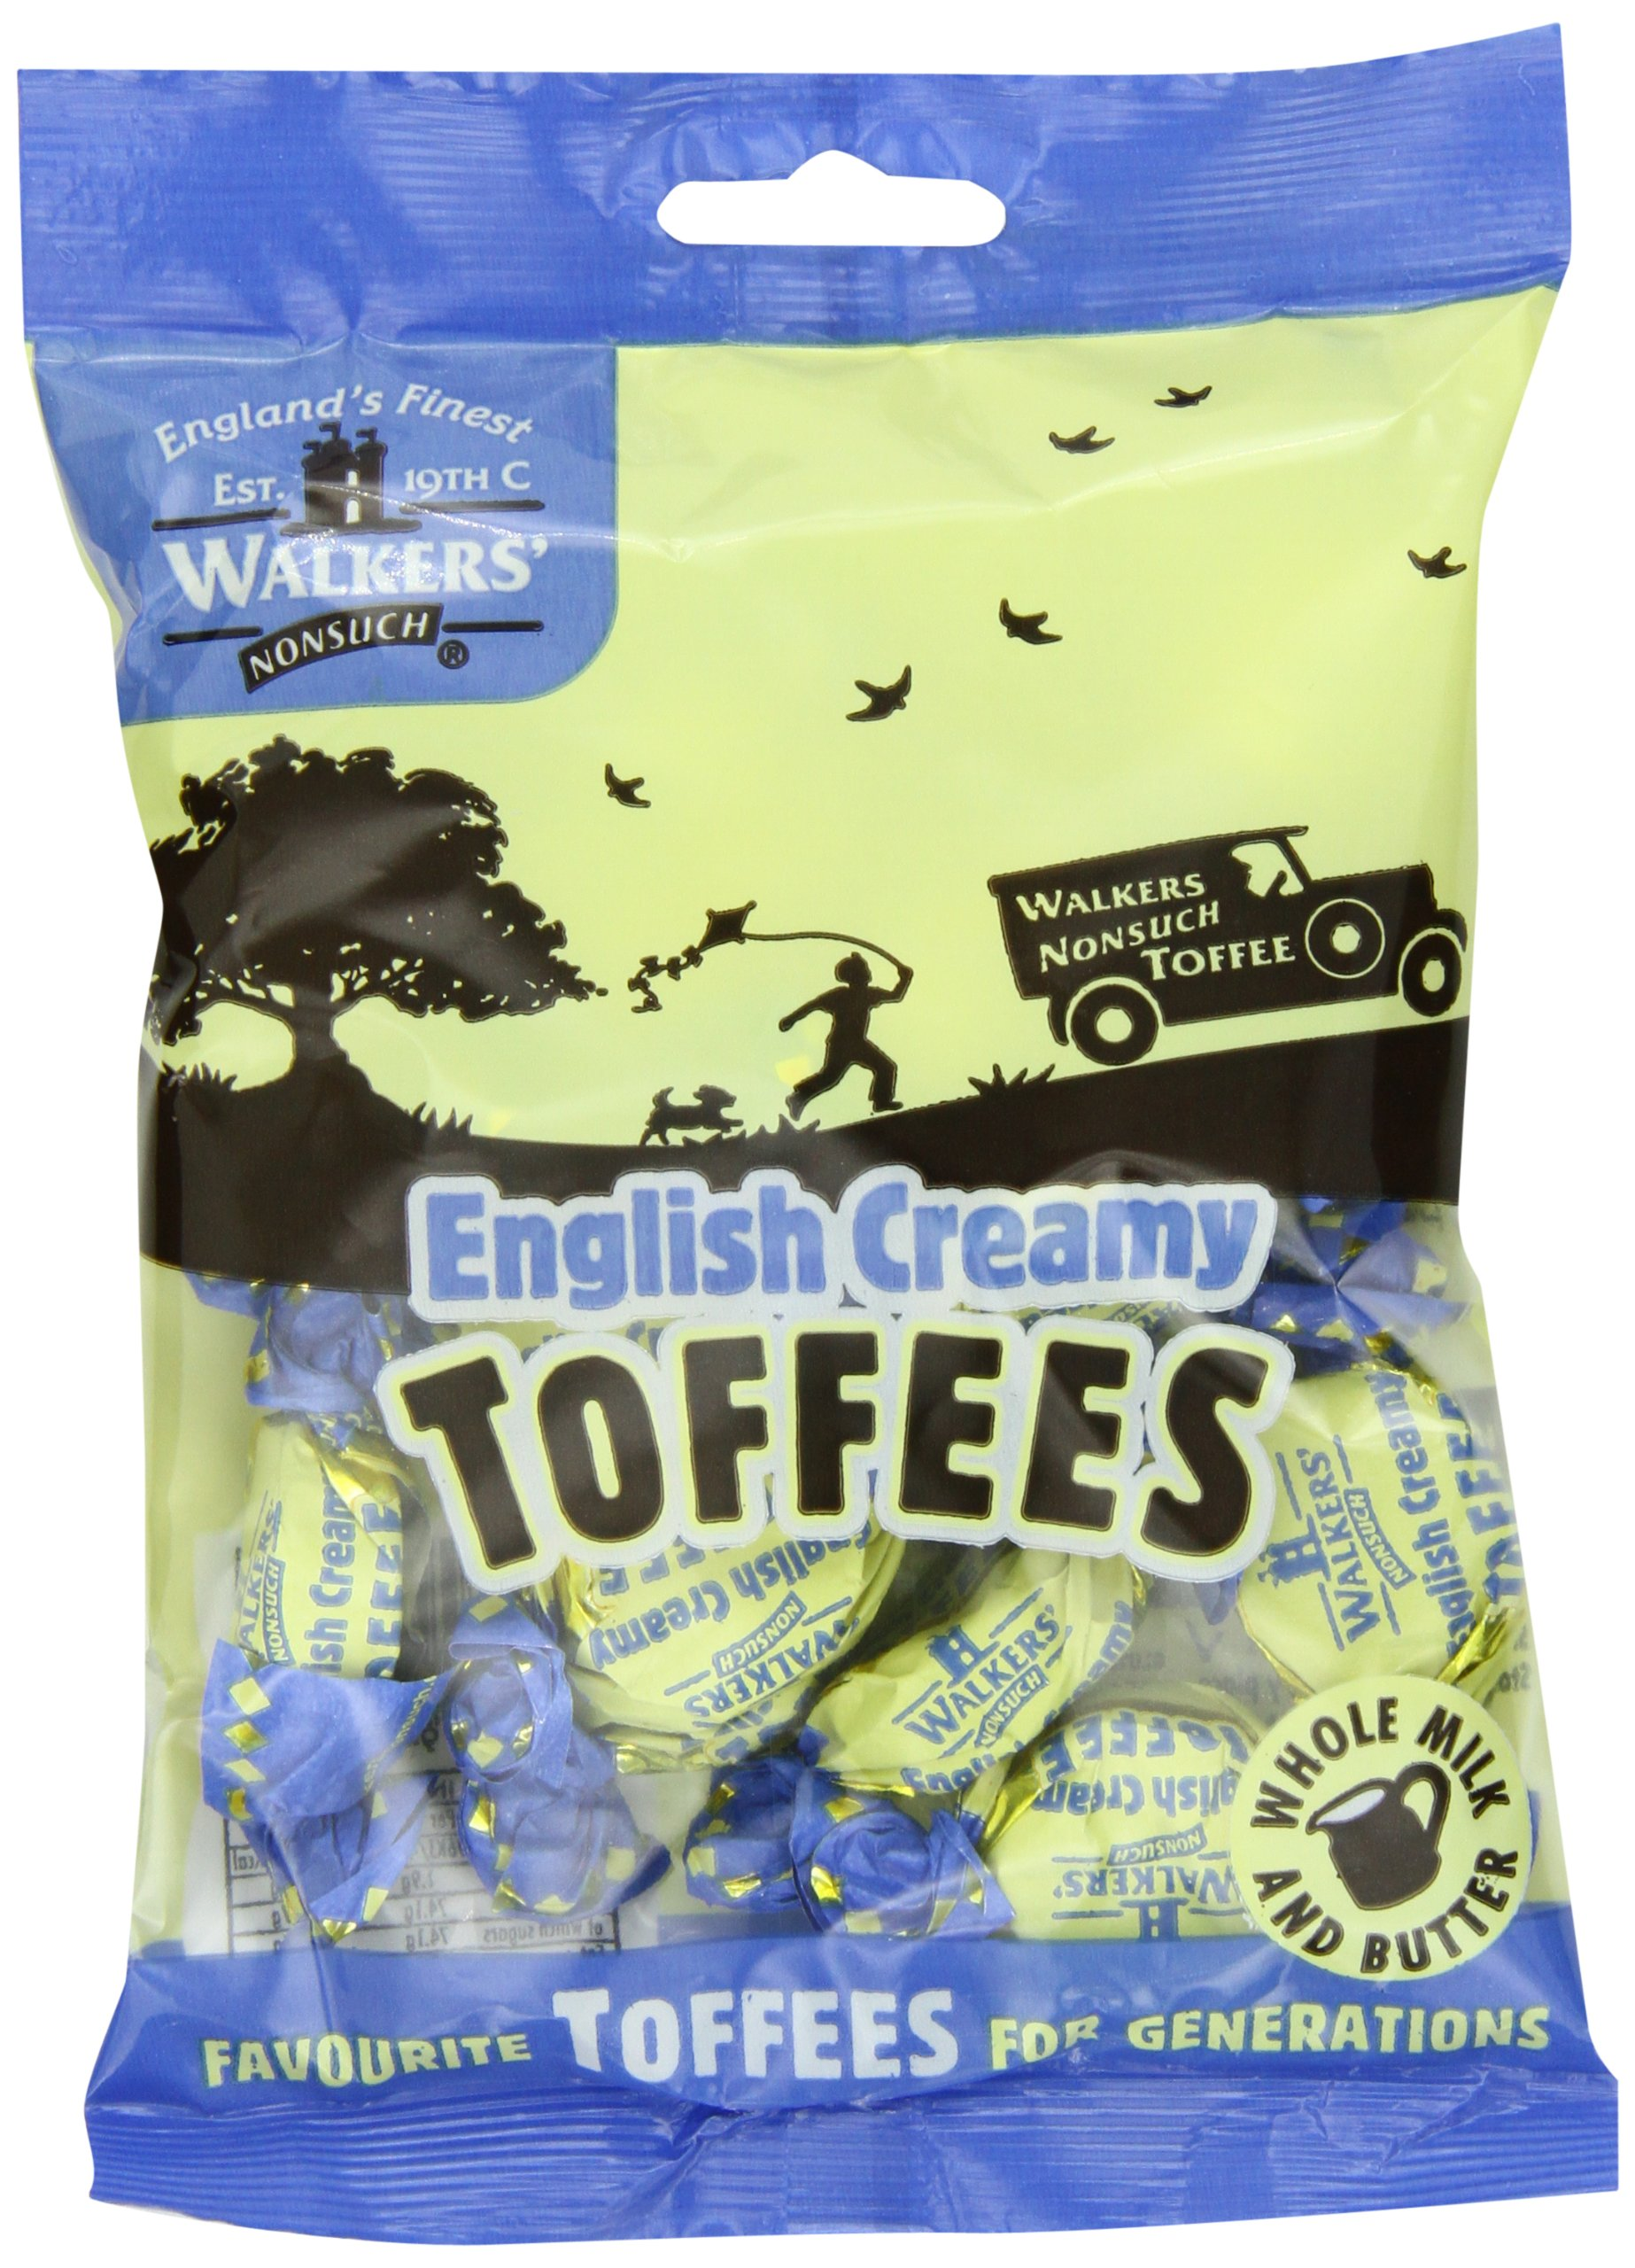 Walkers Nonsuch Toffees, English Creamy, 5.29-Ounce Bag (Pack of 12)